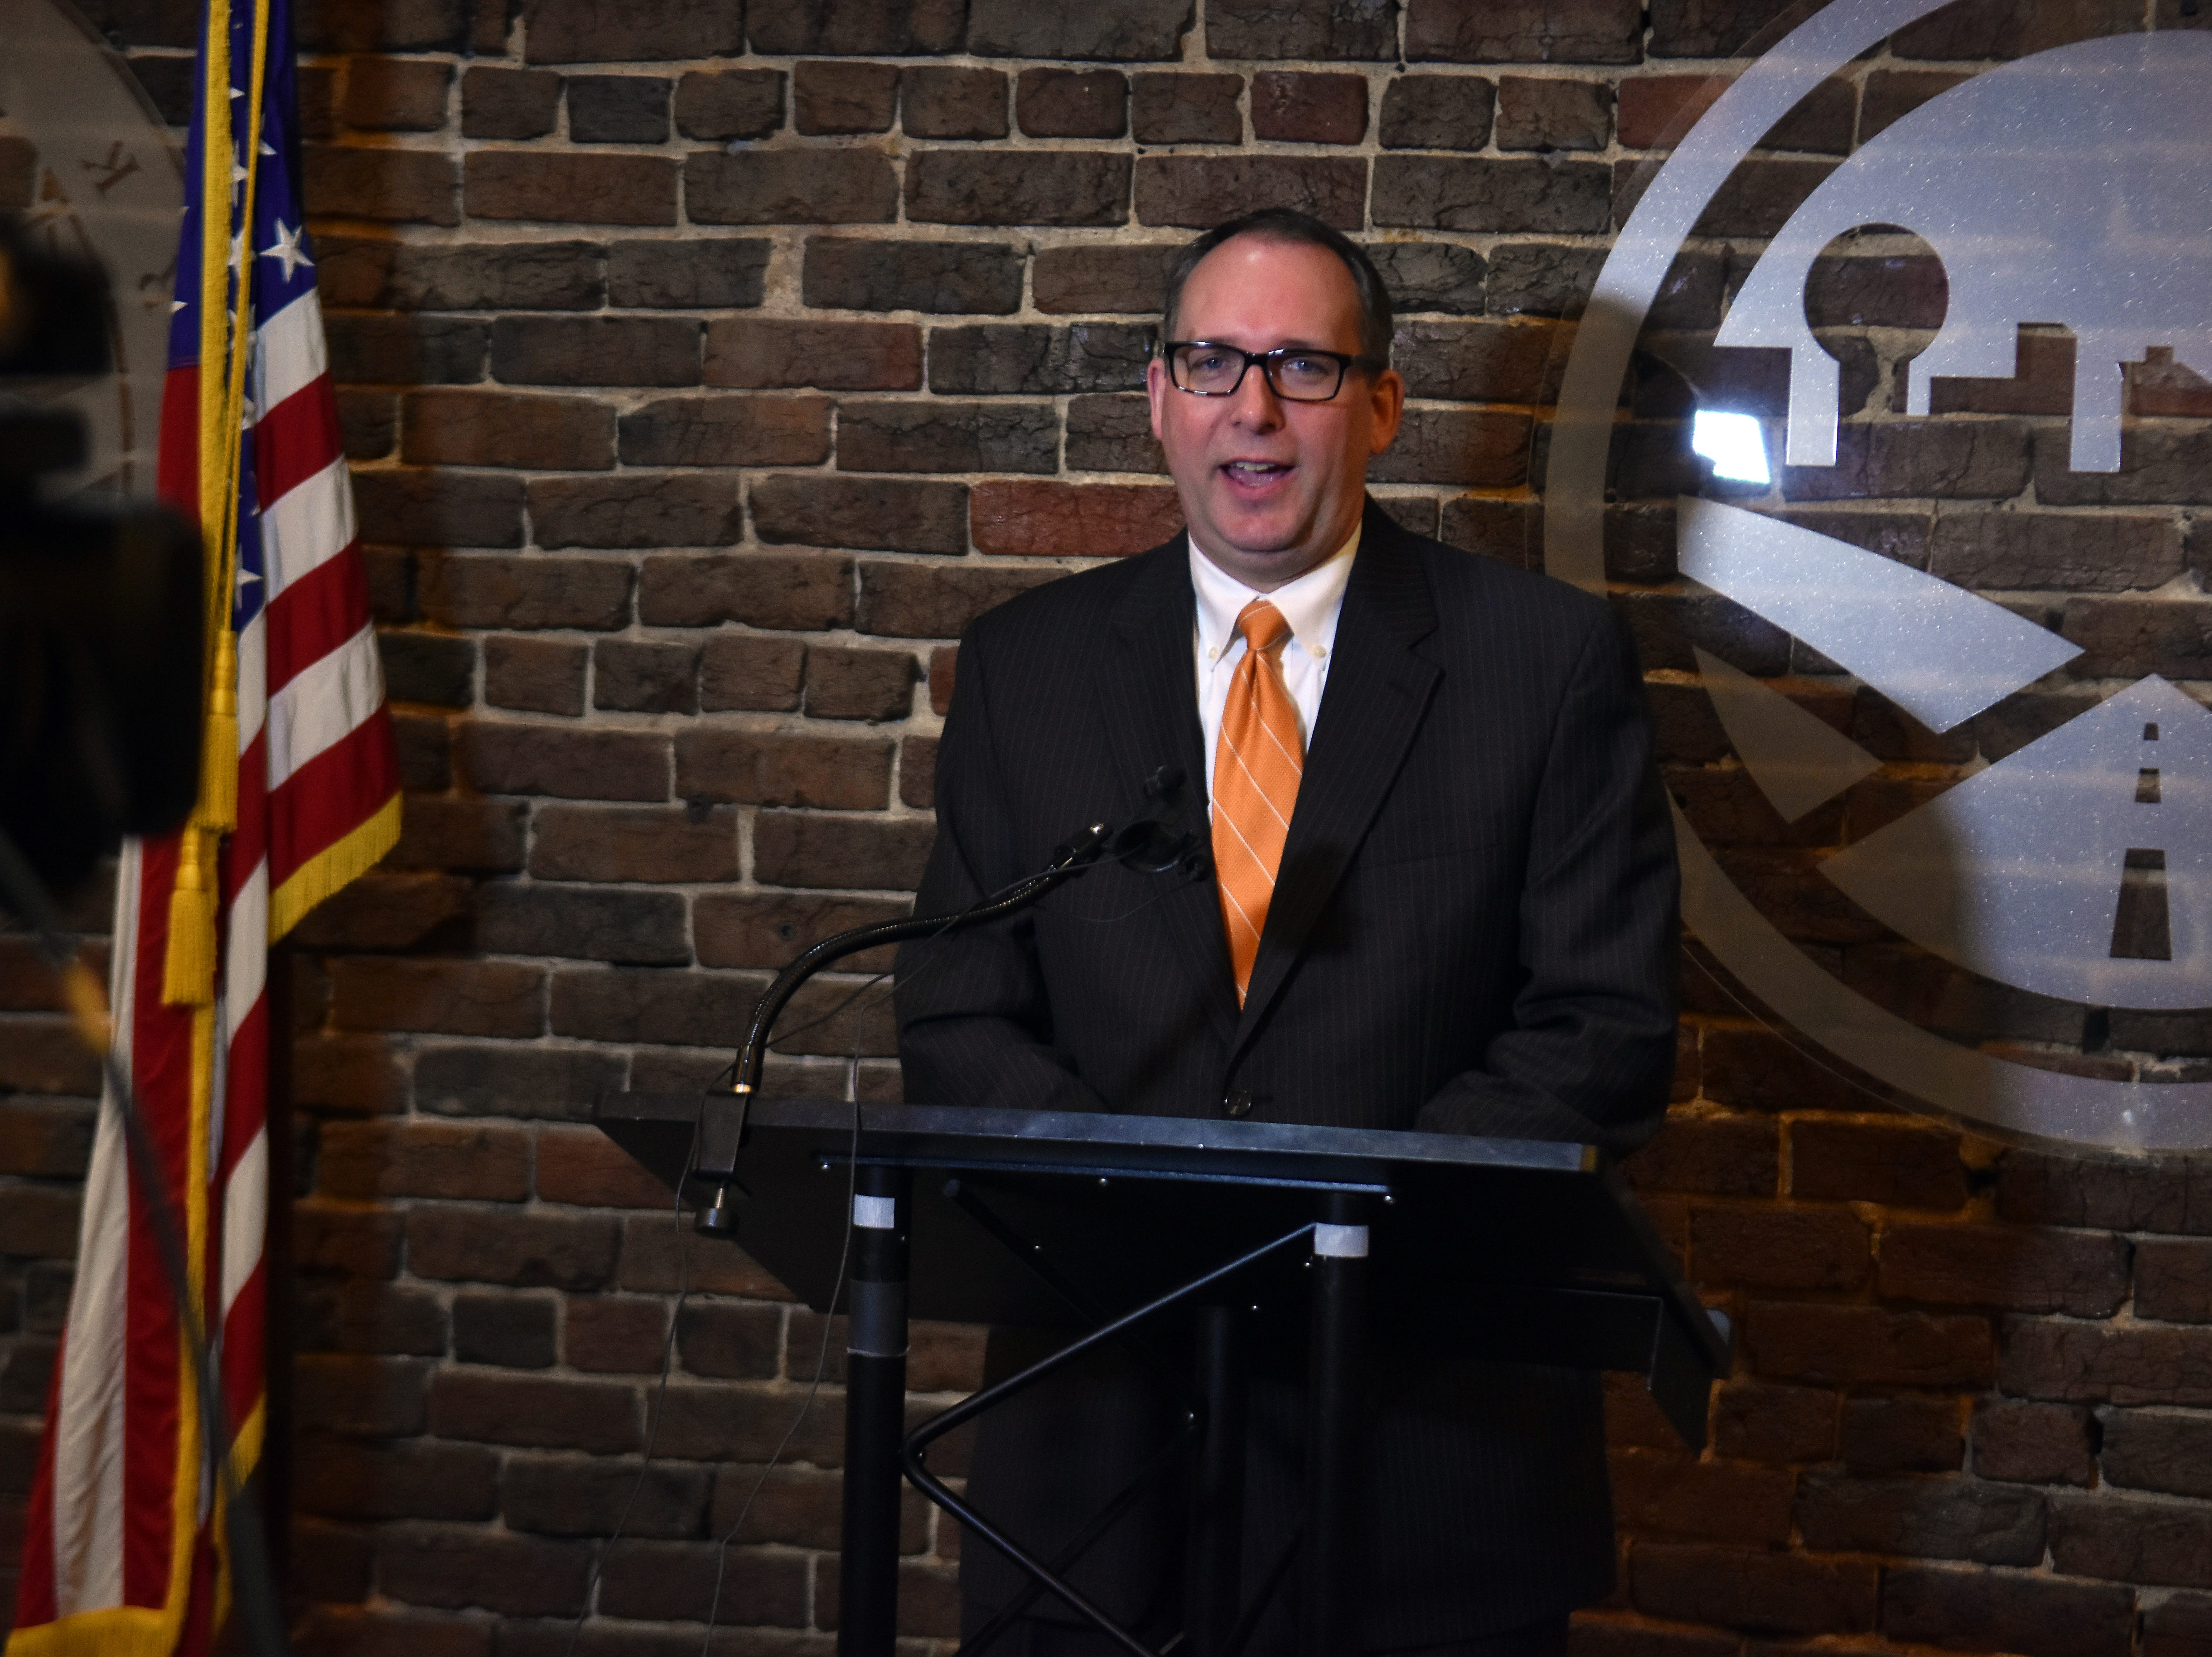 Mike Odom, new CEO of the Knoxville Chamber answers questions during a press conference on Tuesday, March 26.